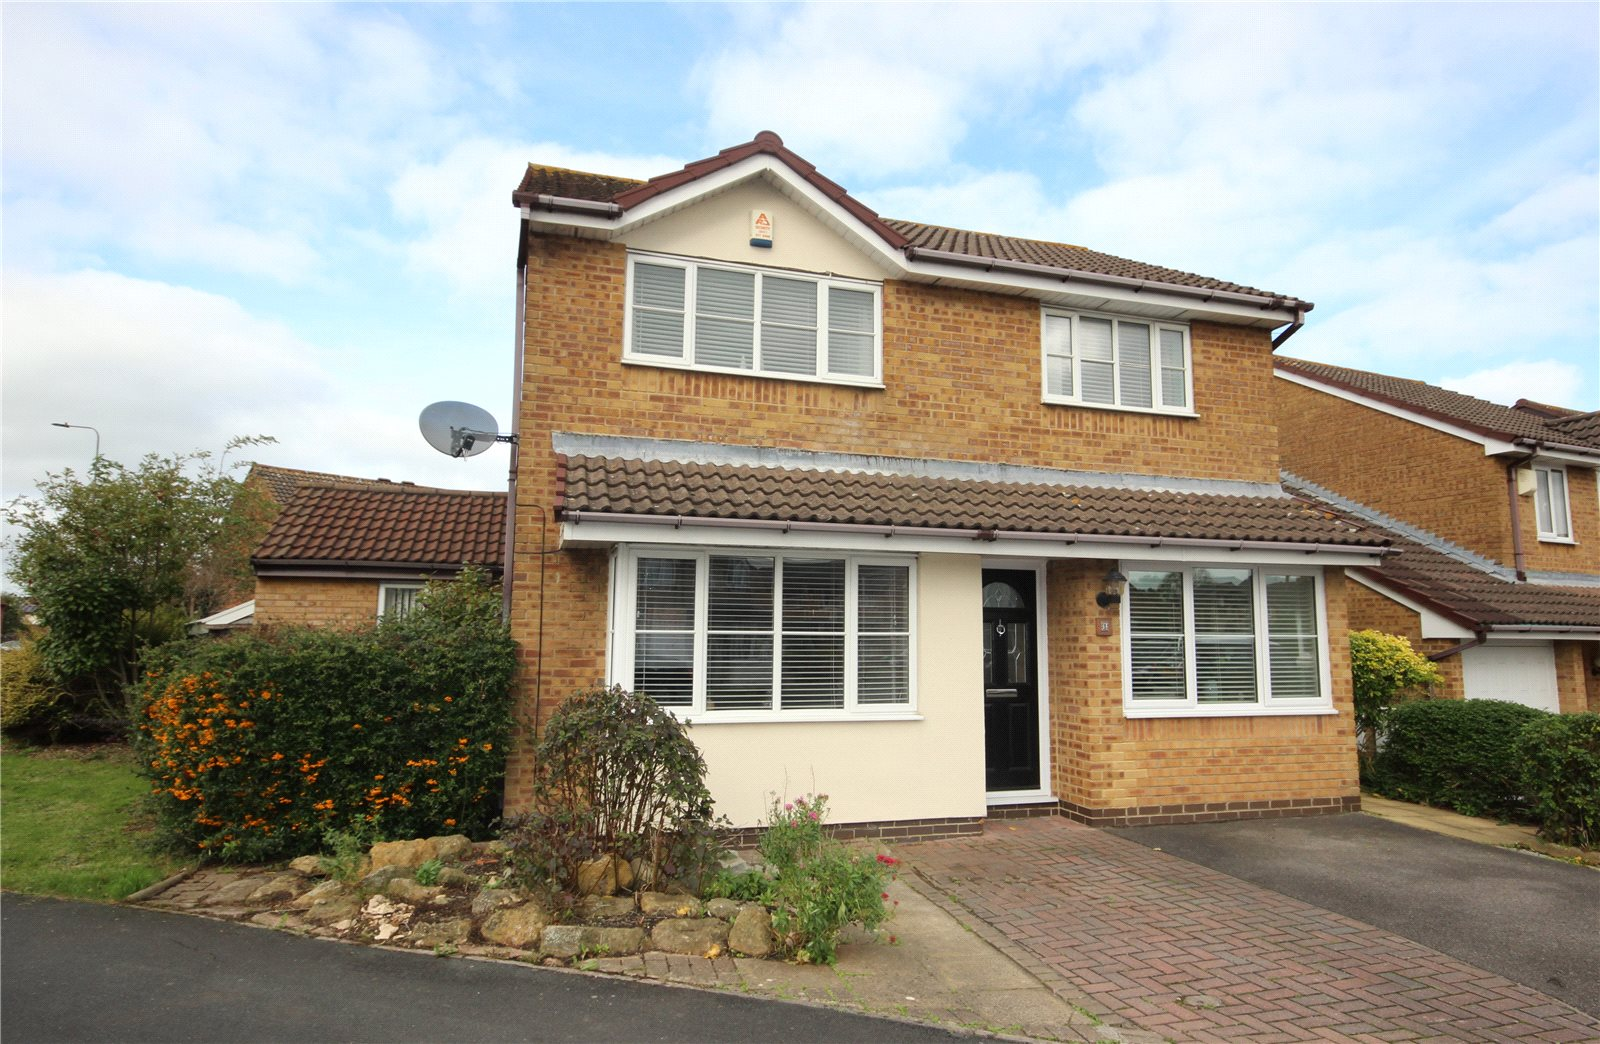 4 Bedrooms Detached House for sale in Ormonds Close Bradley Stoke Bristol BS32